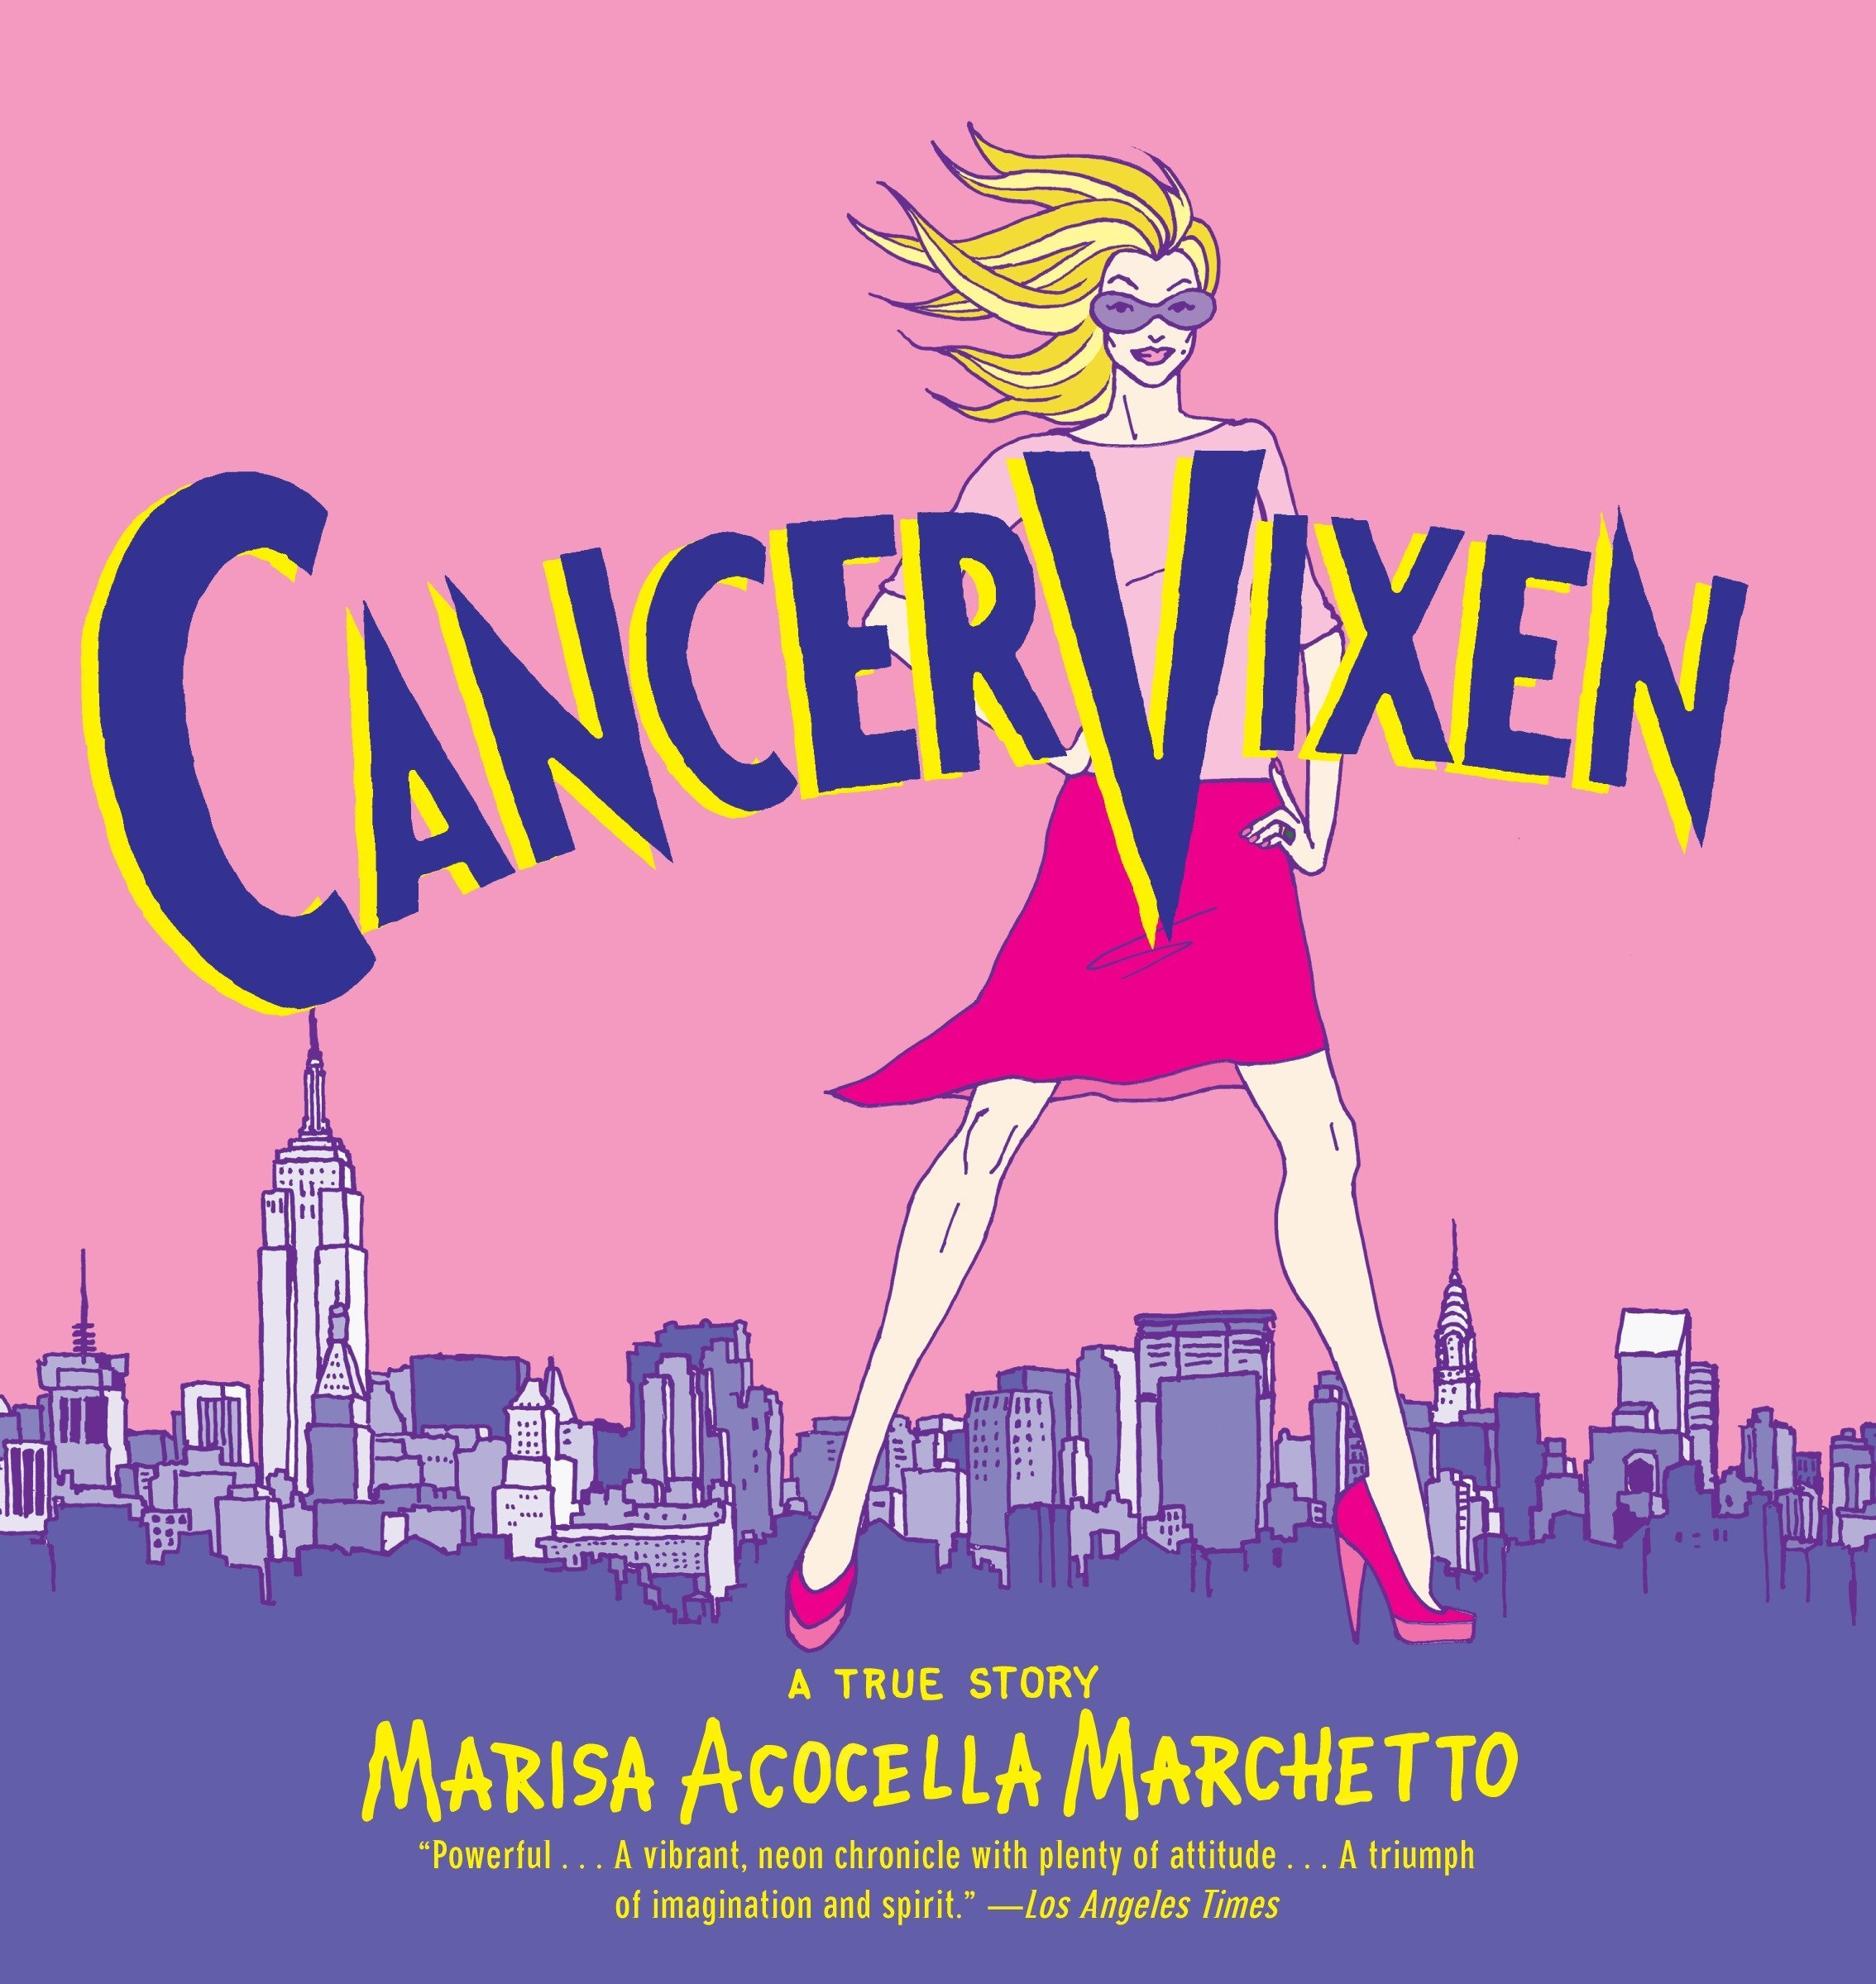 Cancer Vixen: A True Story (Pantheon Graphic Library) ebook